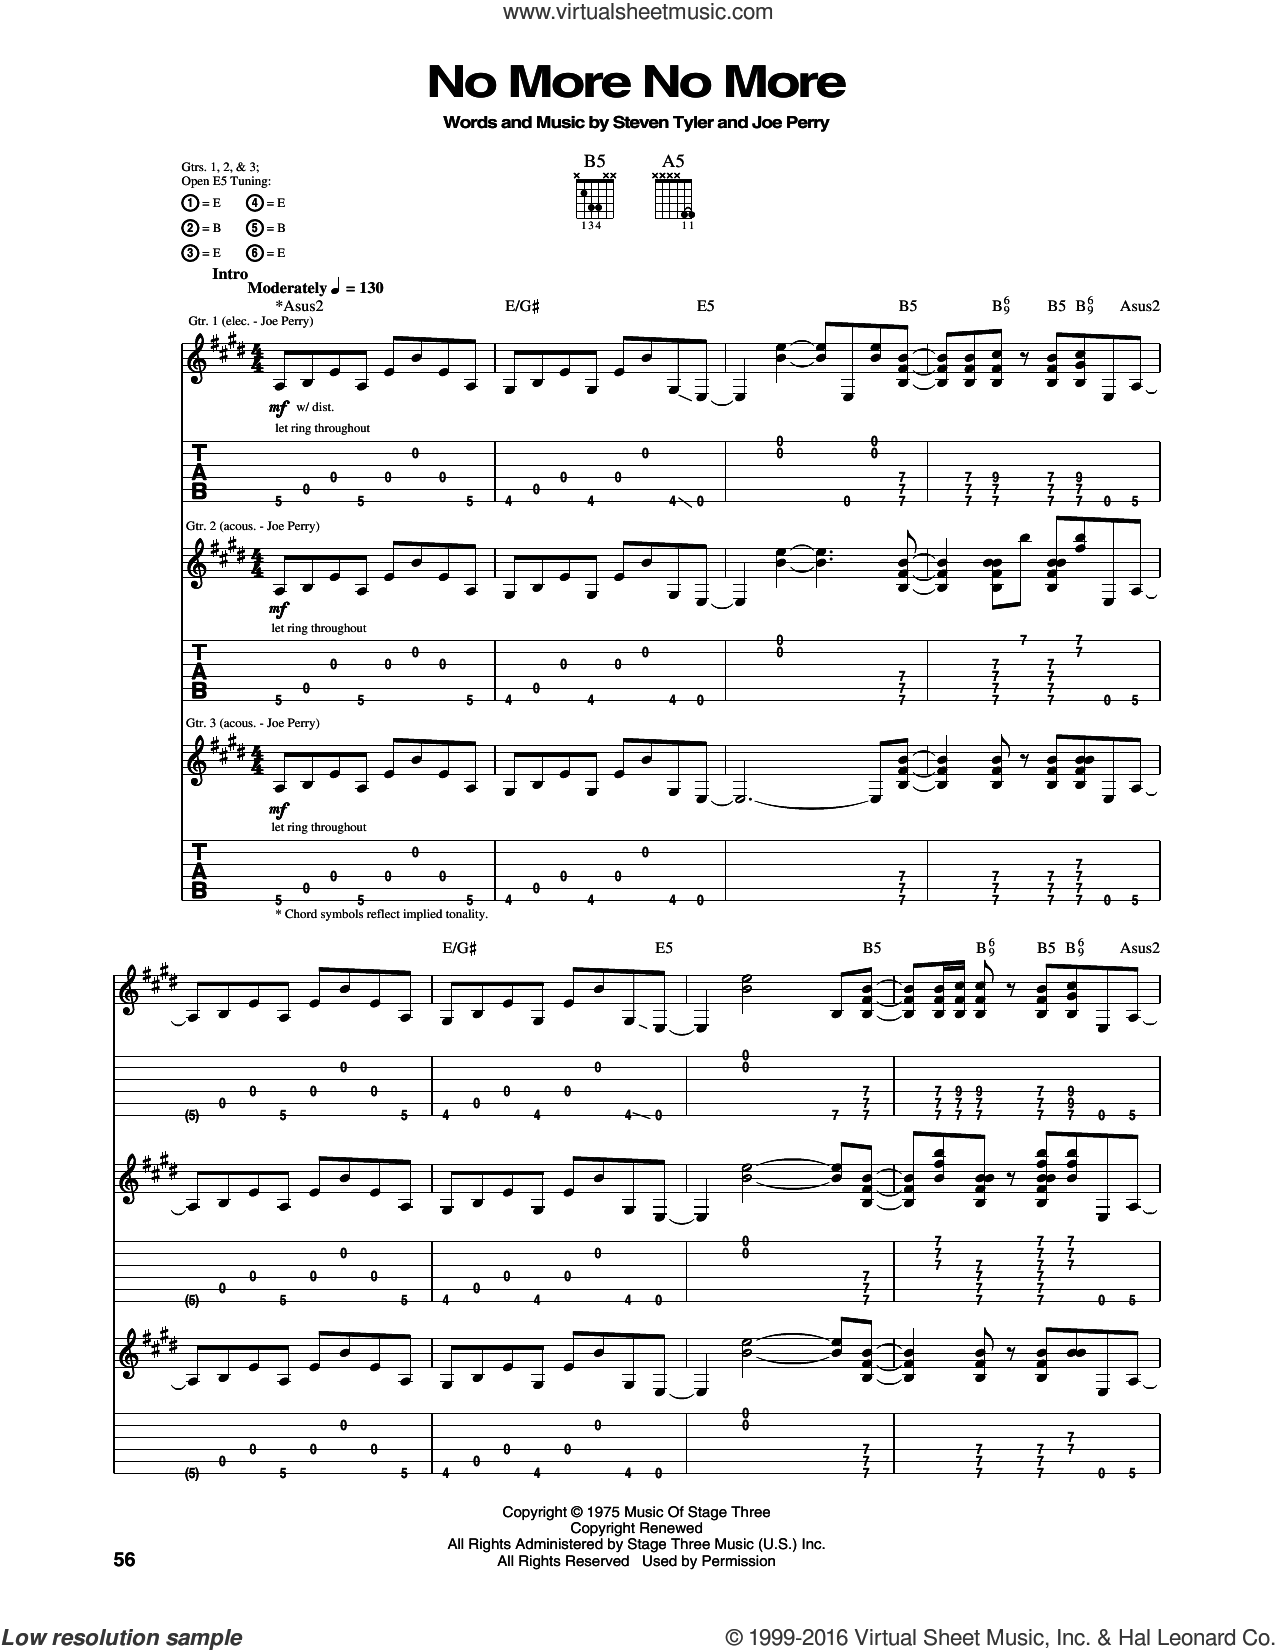 No More No More sheet music for guitar (tablature) by Steven Tyler, Aerosmith and Joe Perry. Score Image Preview.